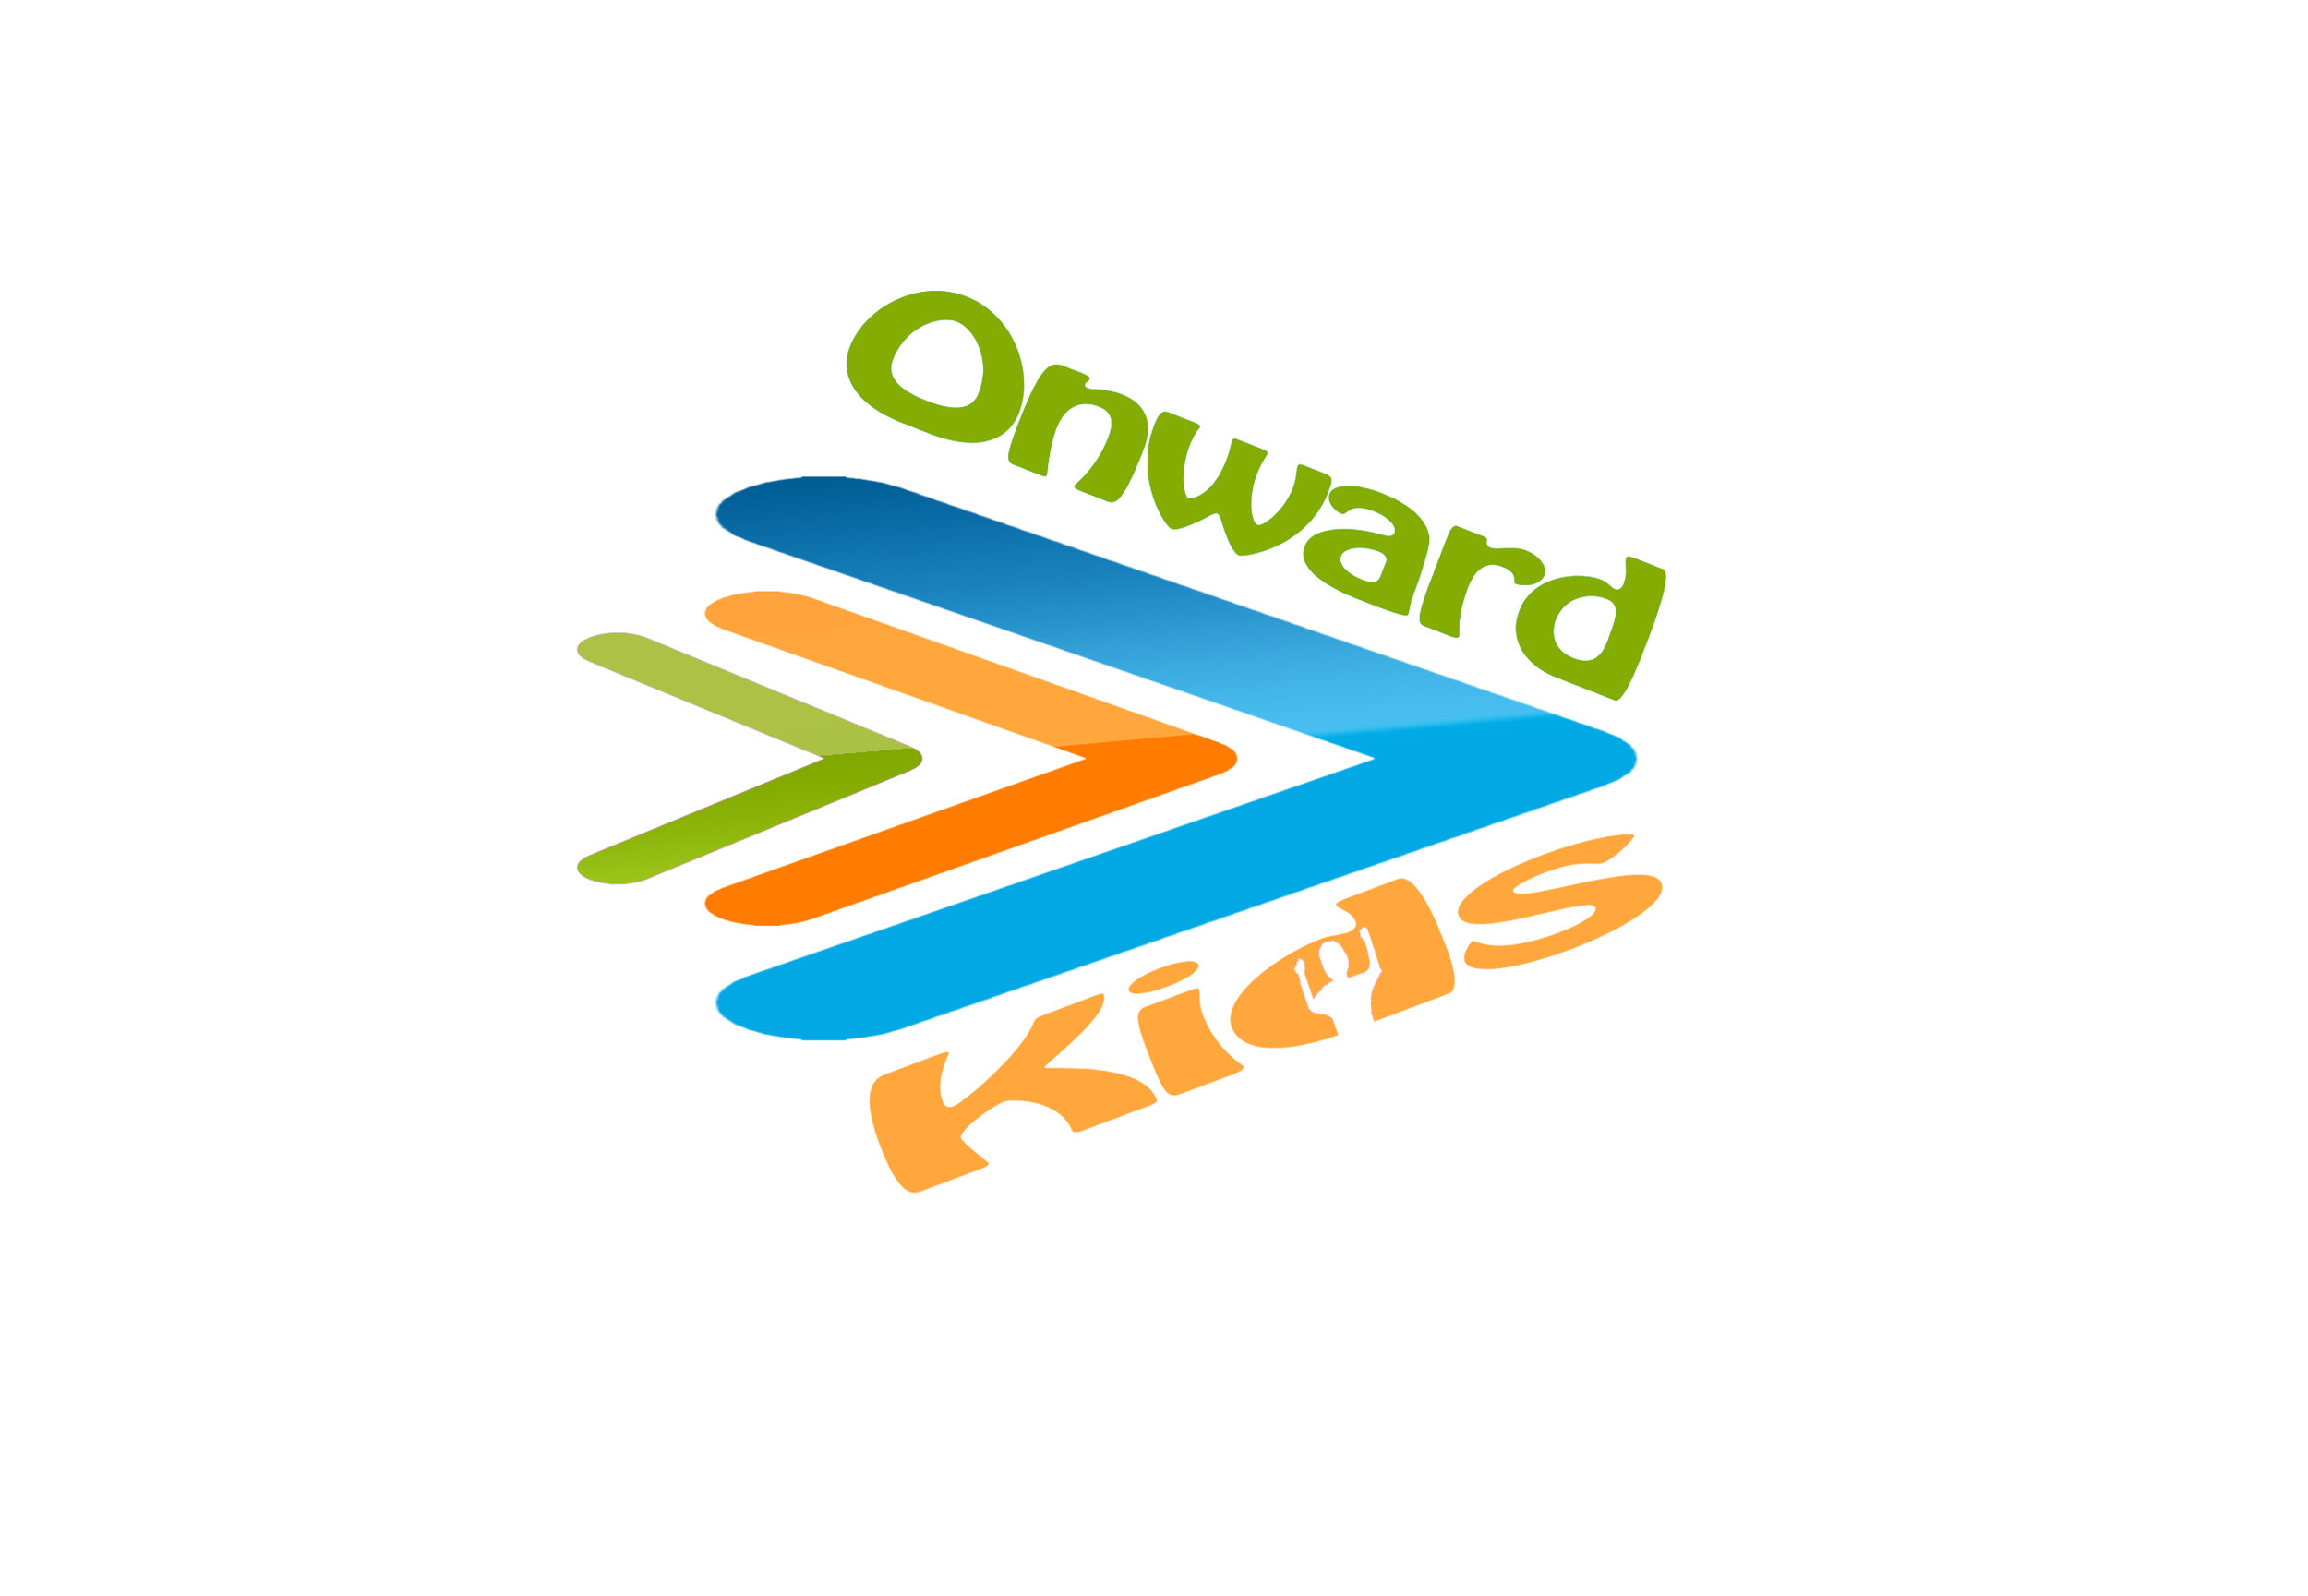 Church kids logo.jpg